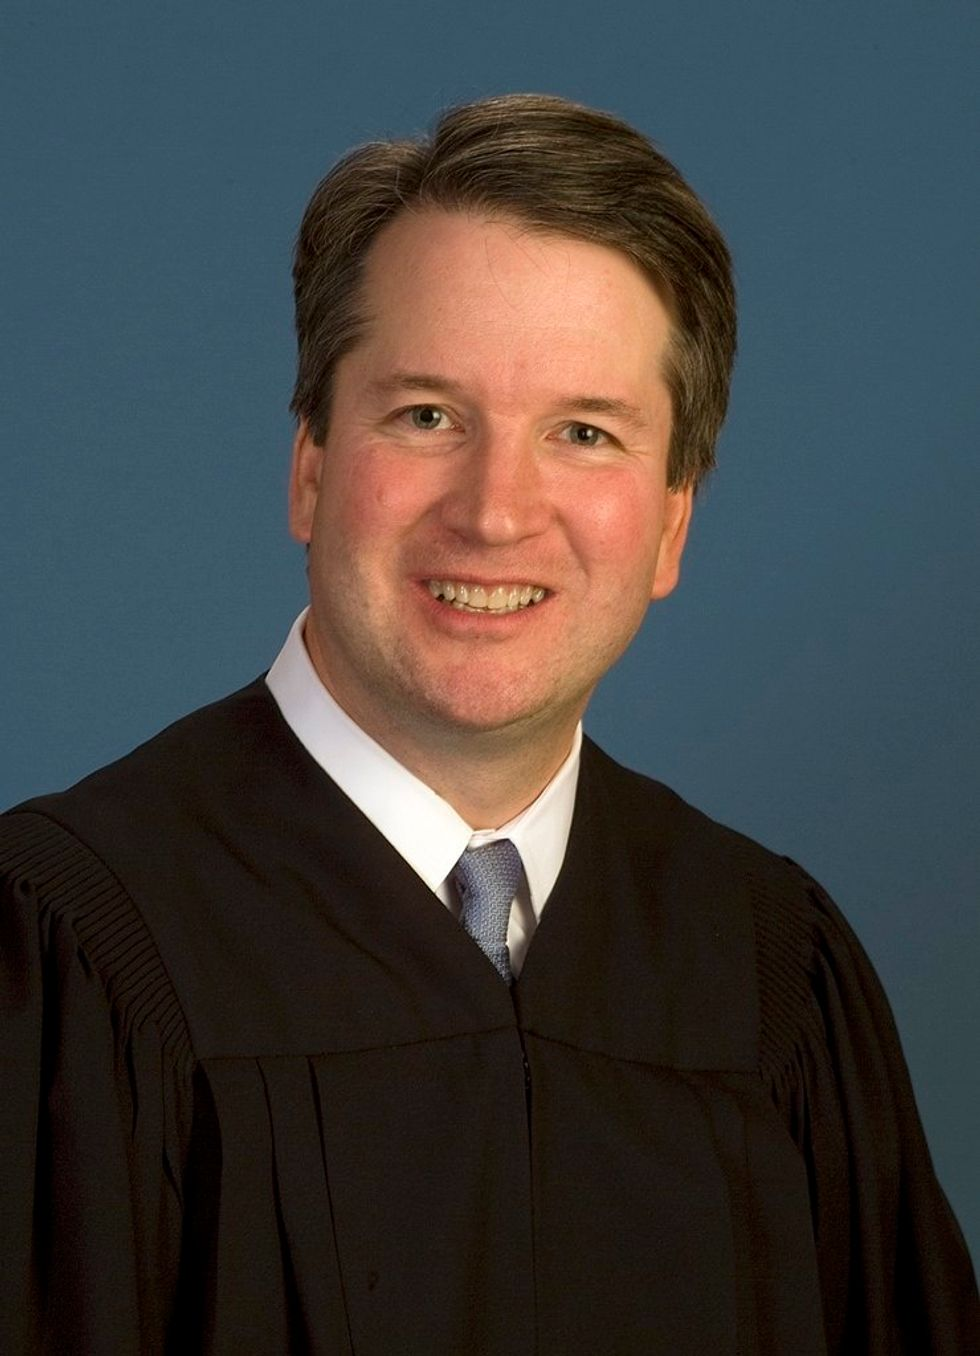 Everyone Should Have Concerns About Brett Kavanaugh